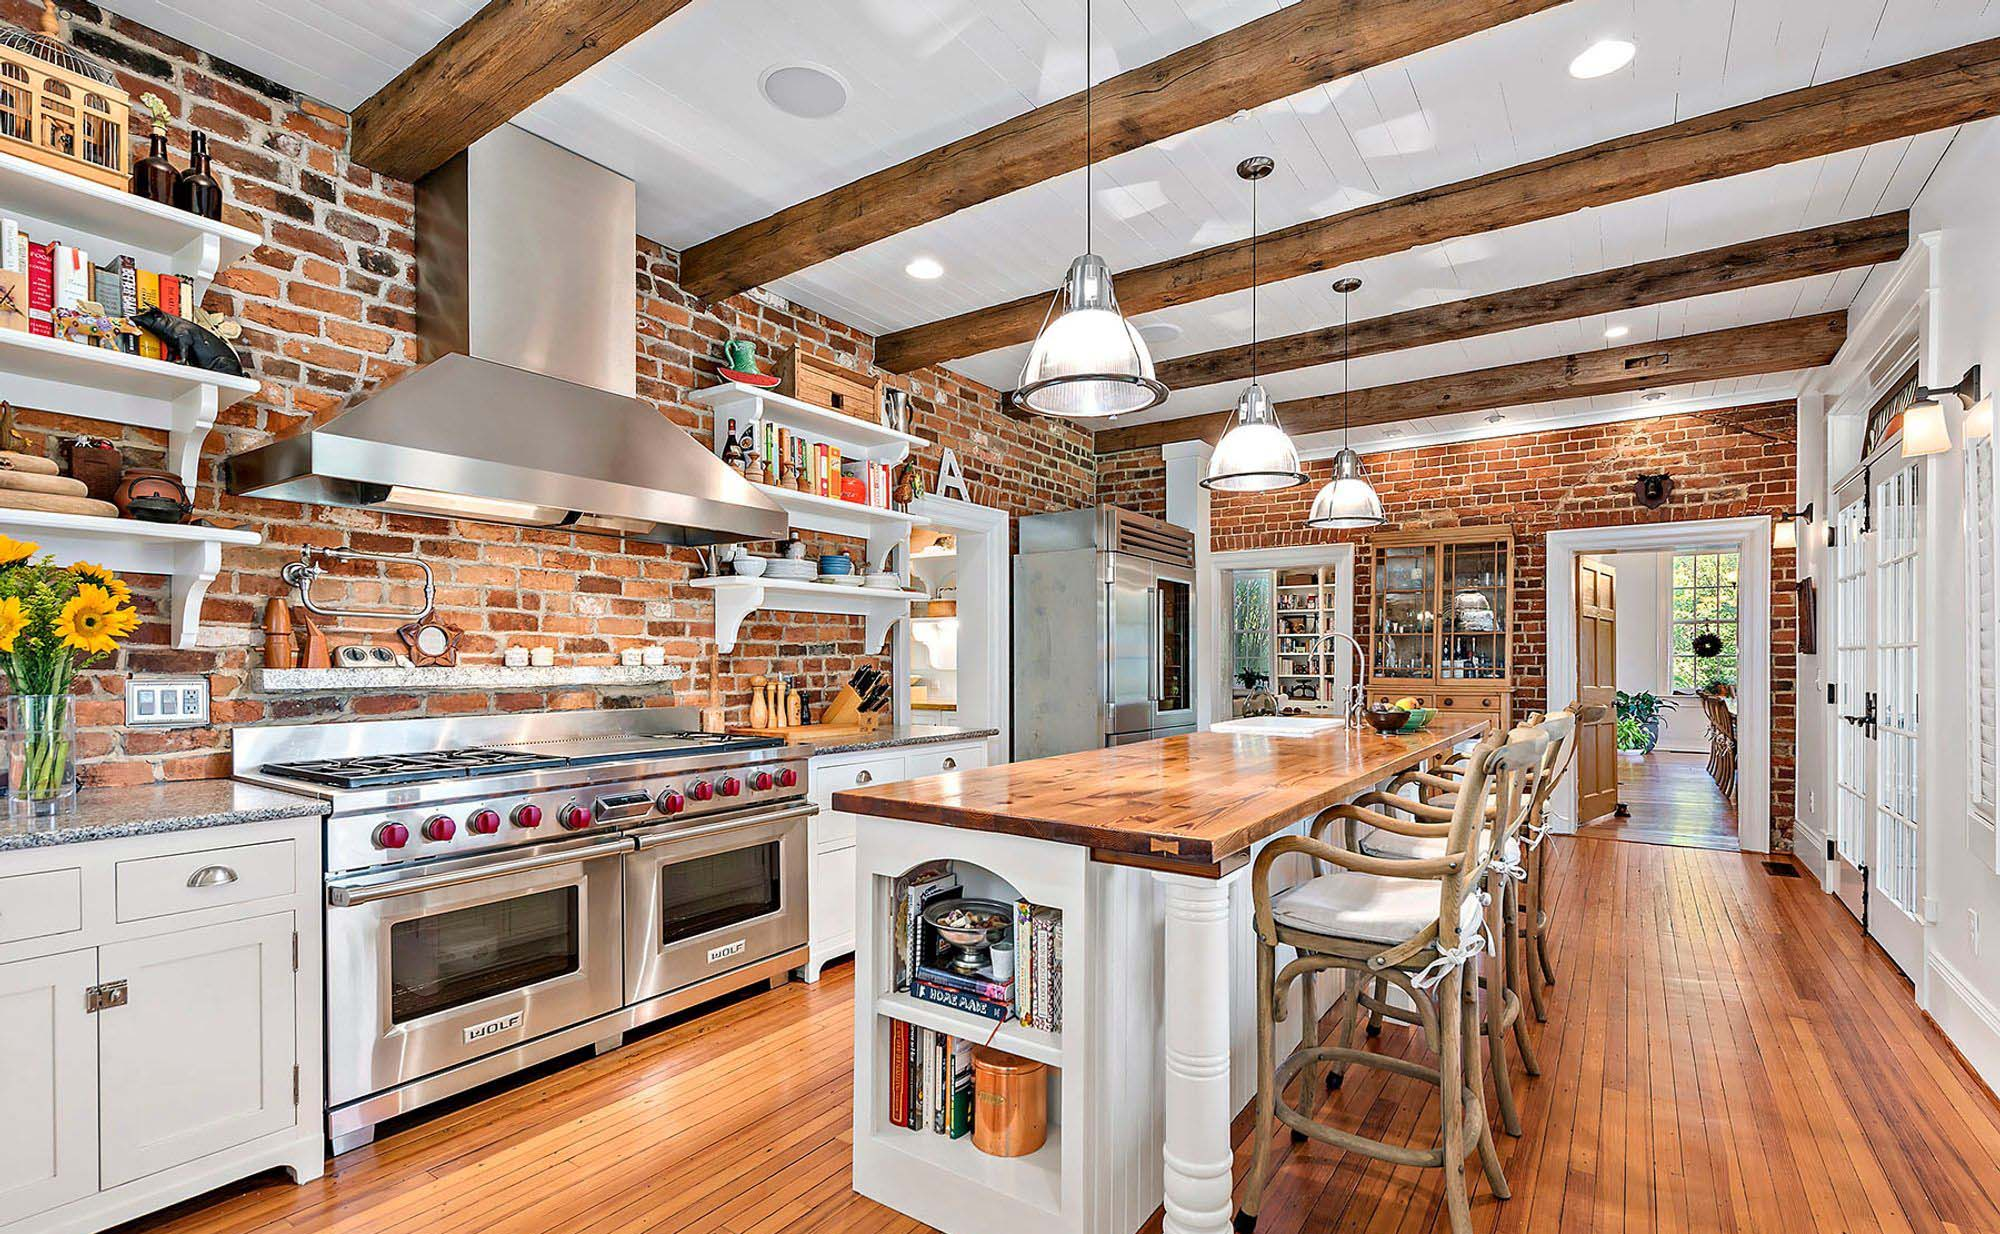 Country style kitchen with red brick walls, white cabinets and lots of real wood.